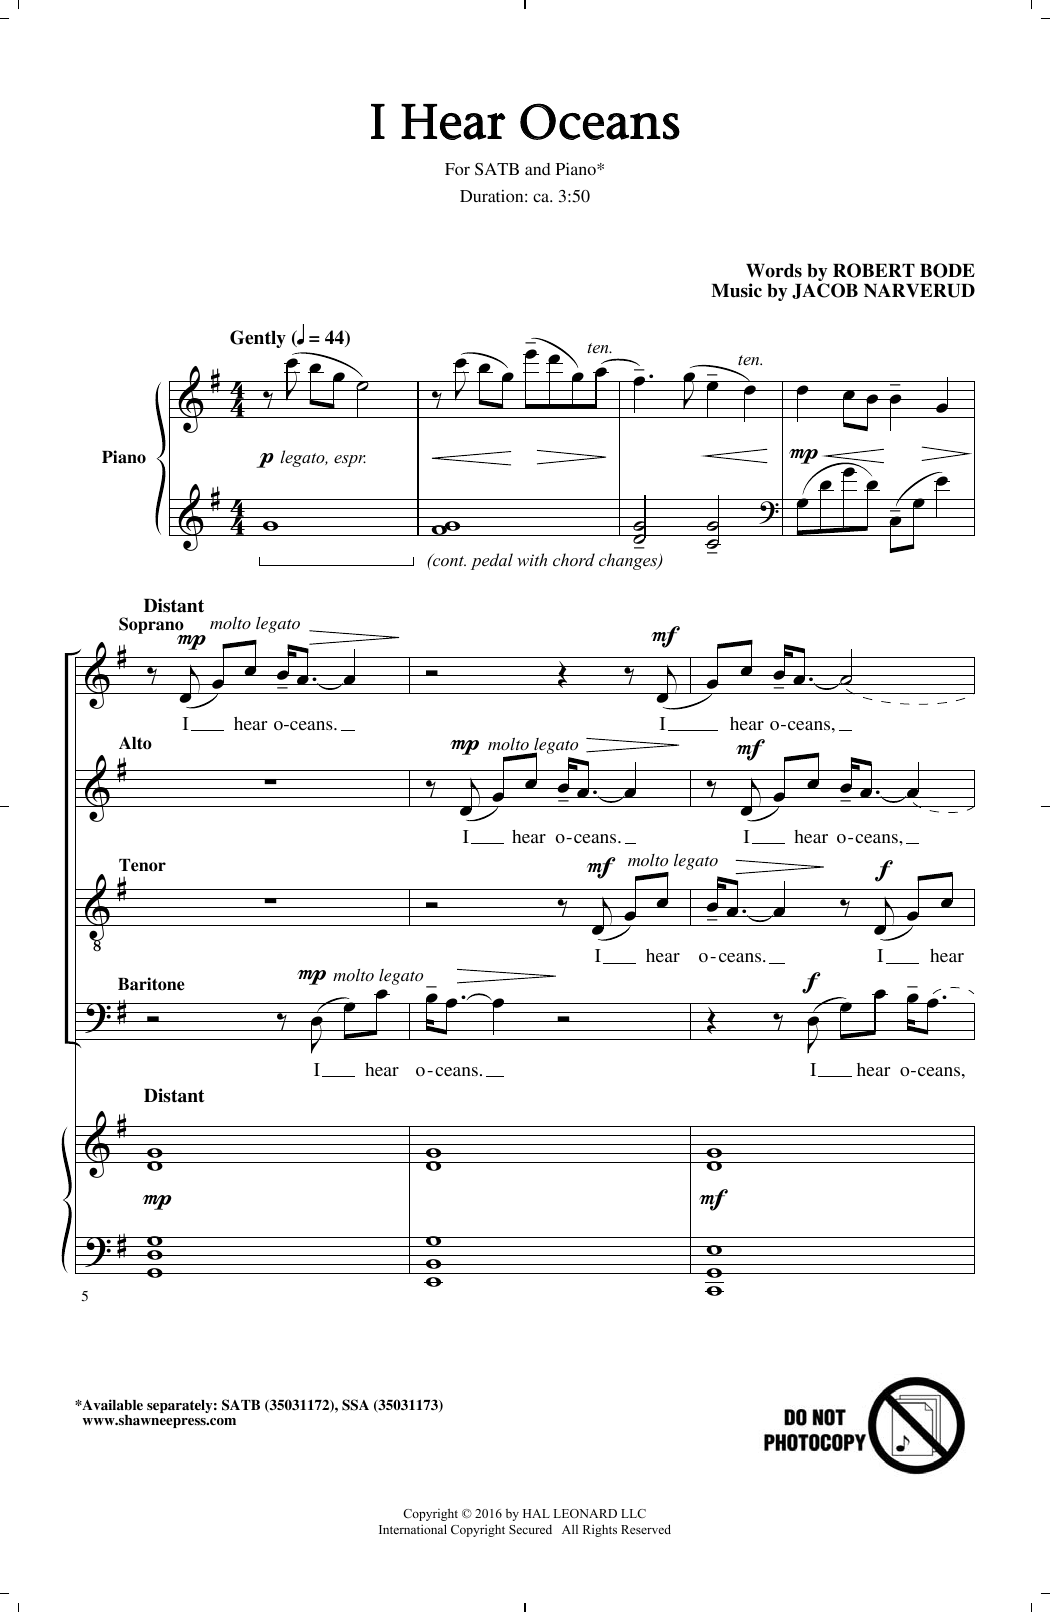 I Hear Oceans (SATB Choir)